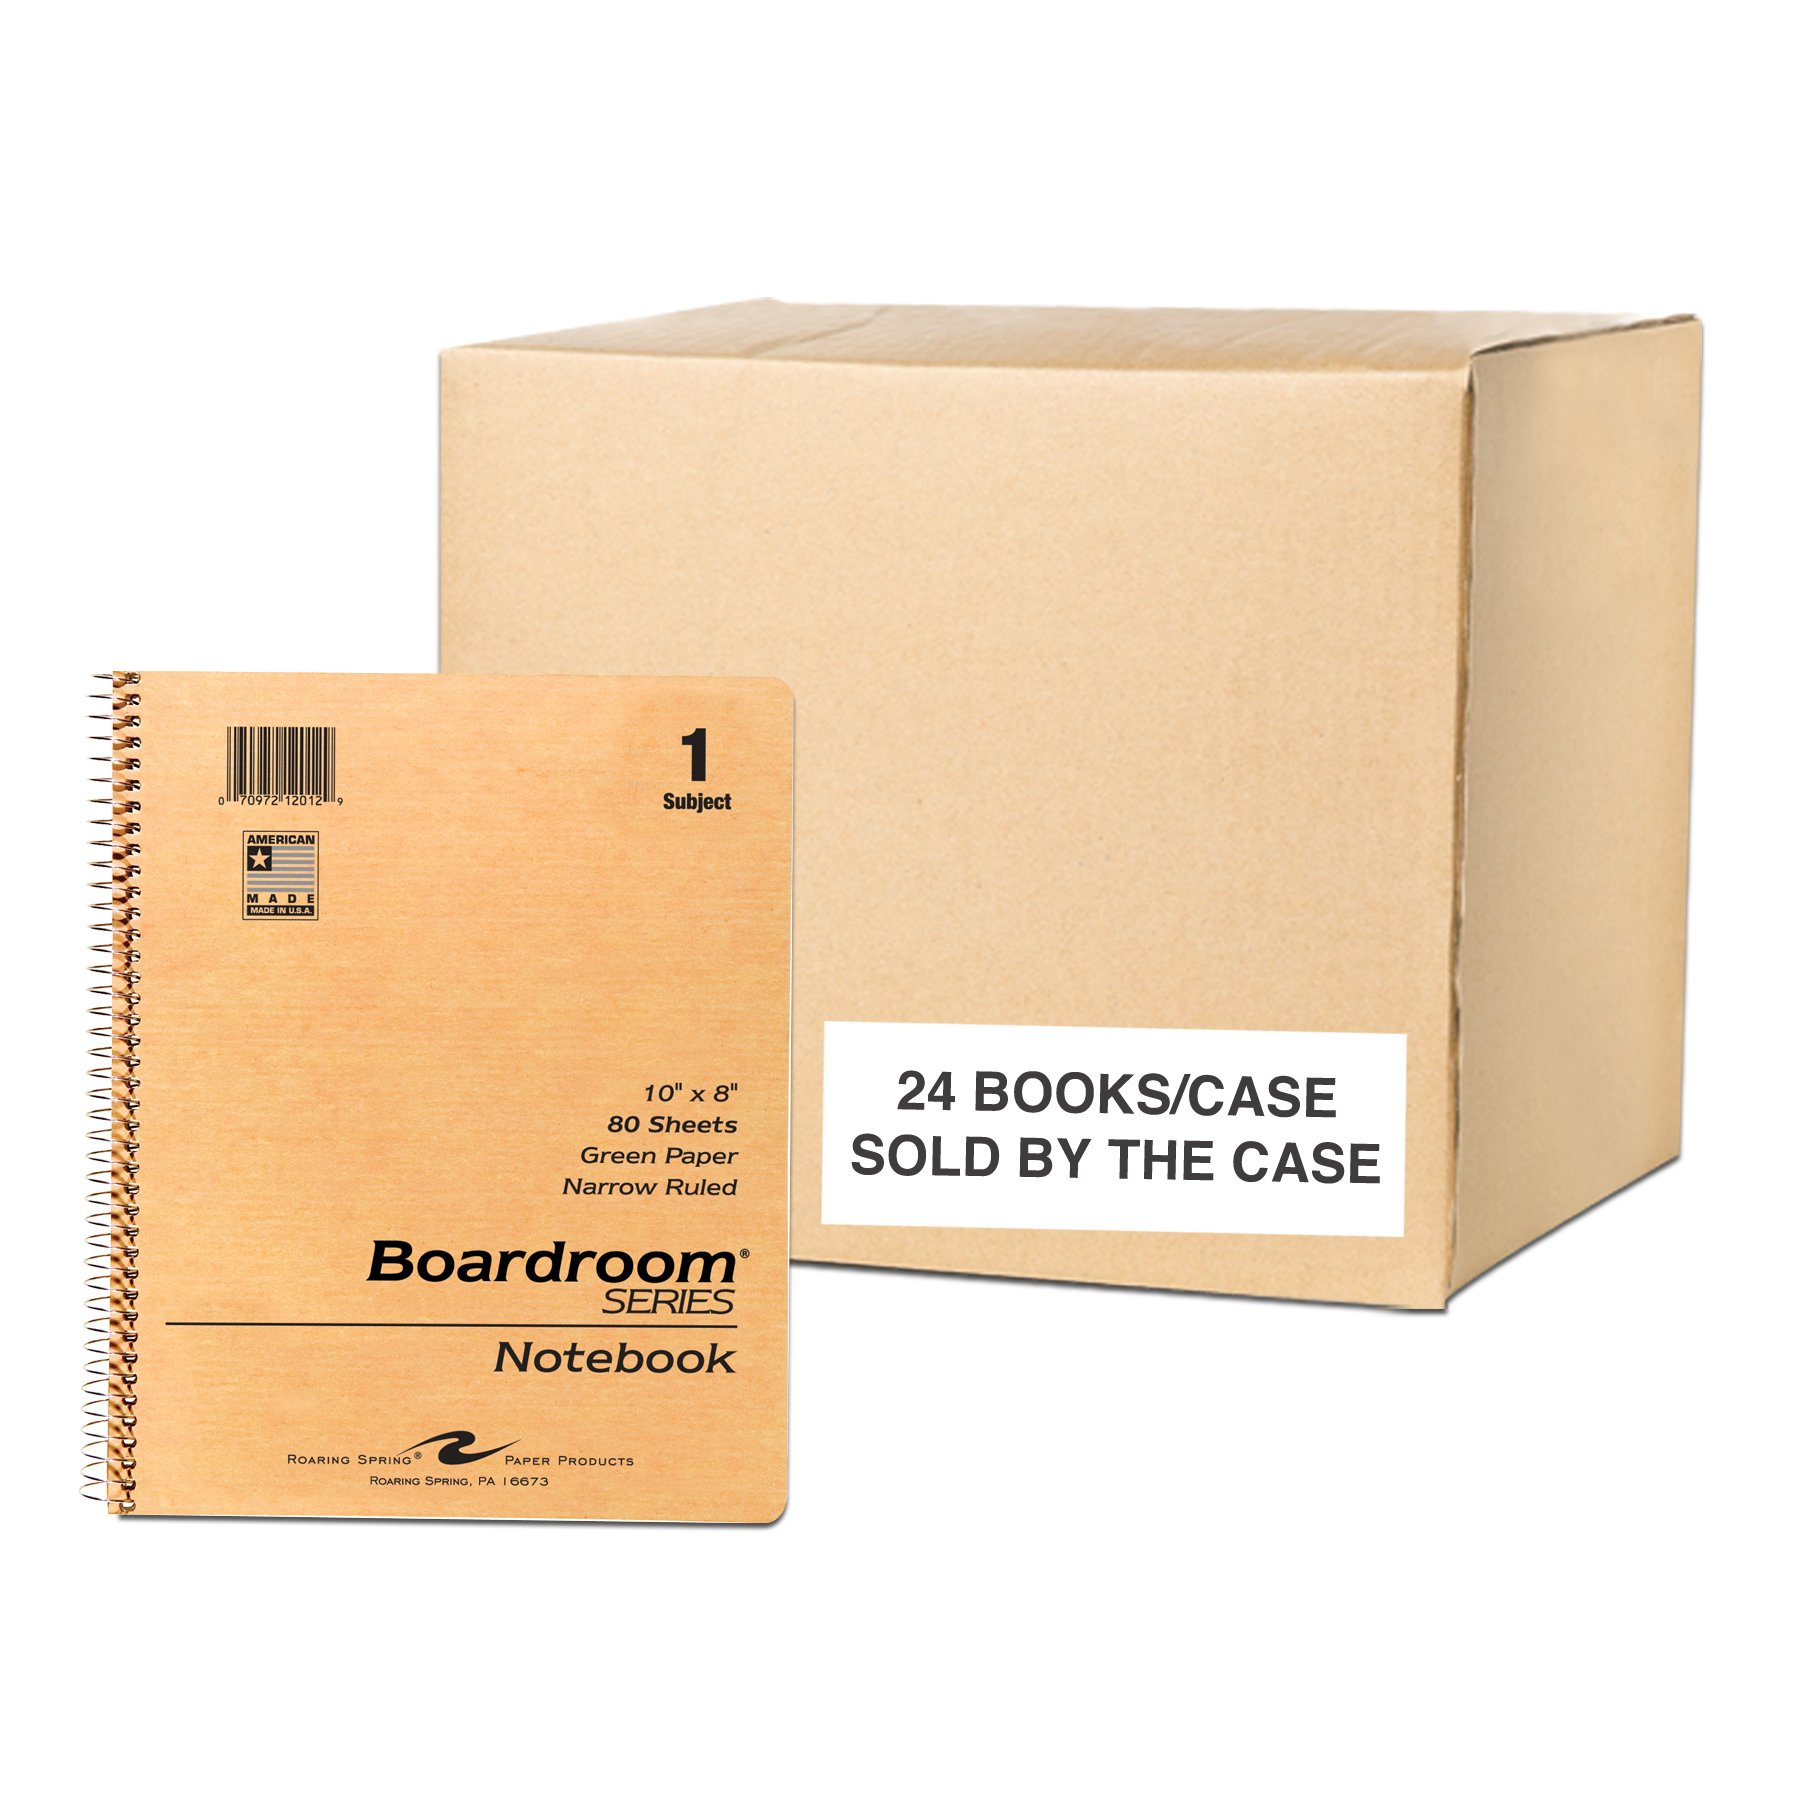 Case of 24 One Subject Wirebound Notebooks, 10''x8'', 80 sheets 15# Green Paper, Brown Kraft Covers, Narrow Ruled W/Margin